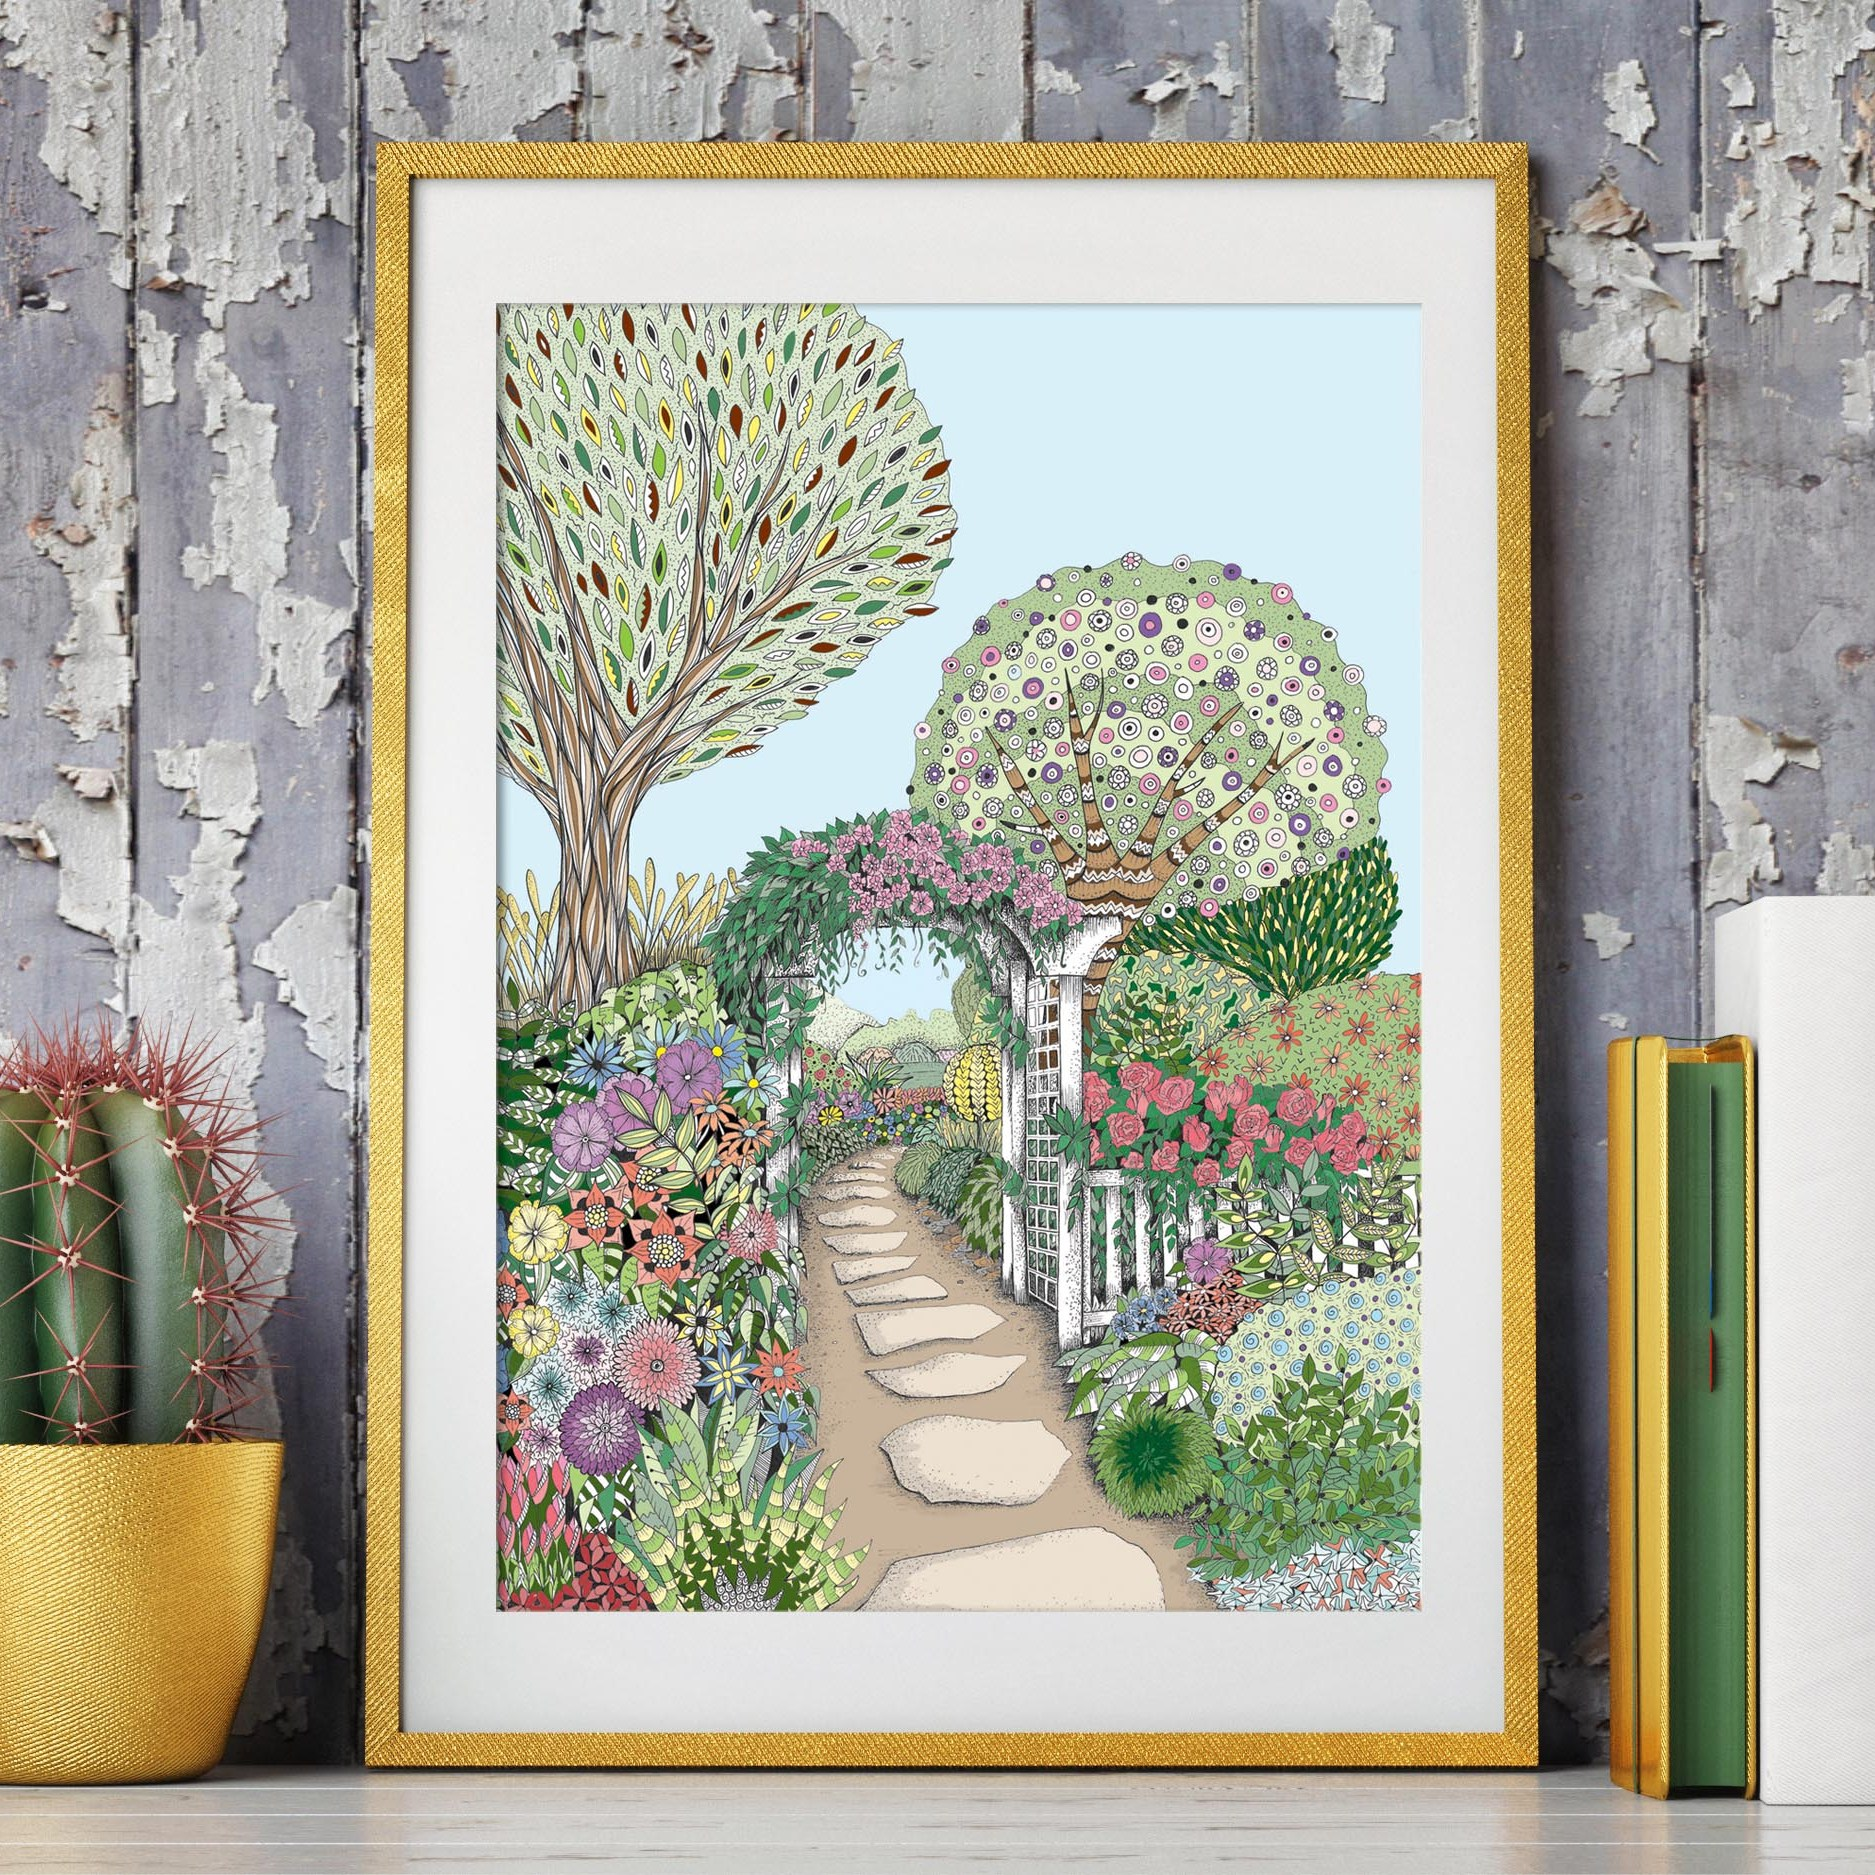 An A4 illustrations with a colourful garden scene. Stepping stones going through an archway.